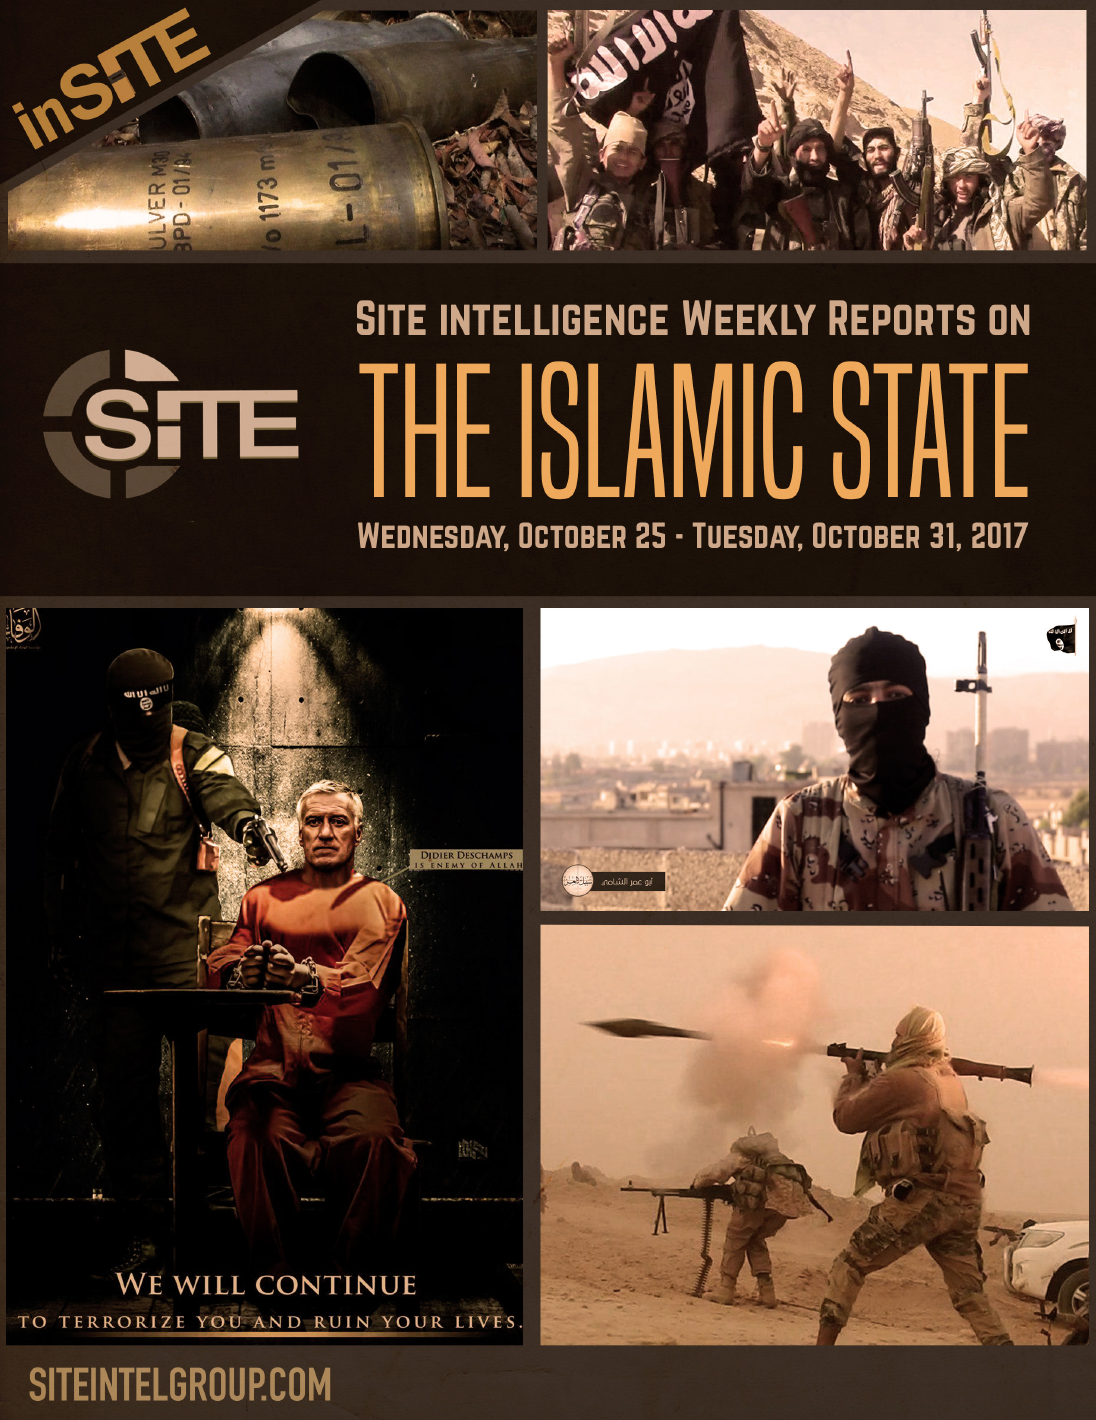 Weekly inSITE on the Islamic State, October 25-31